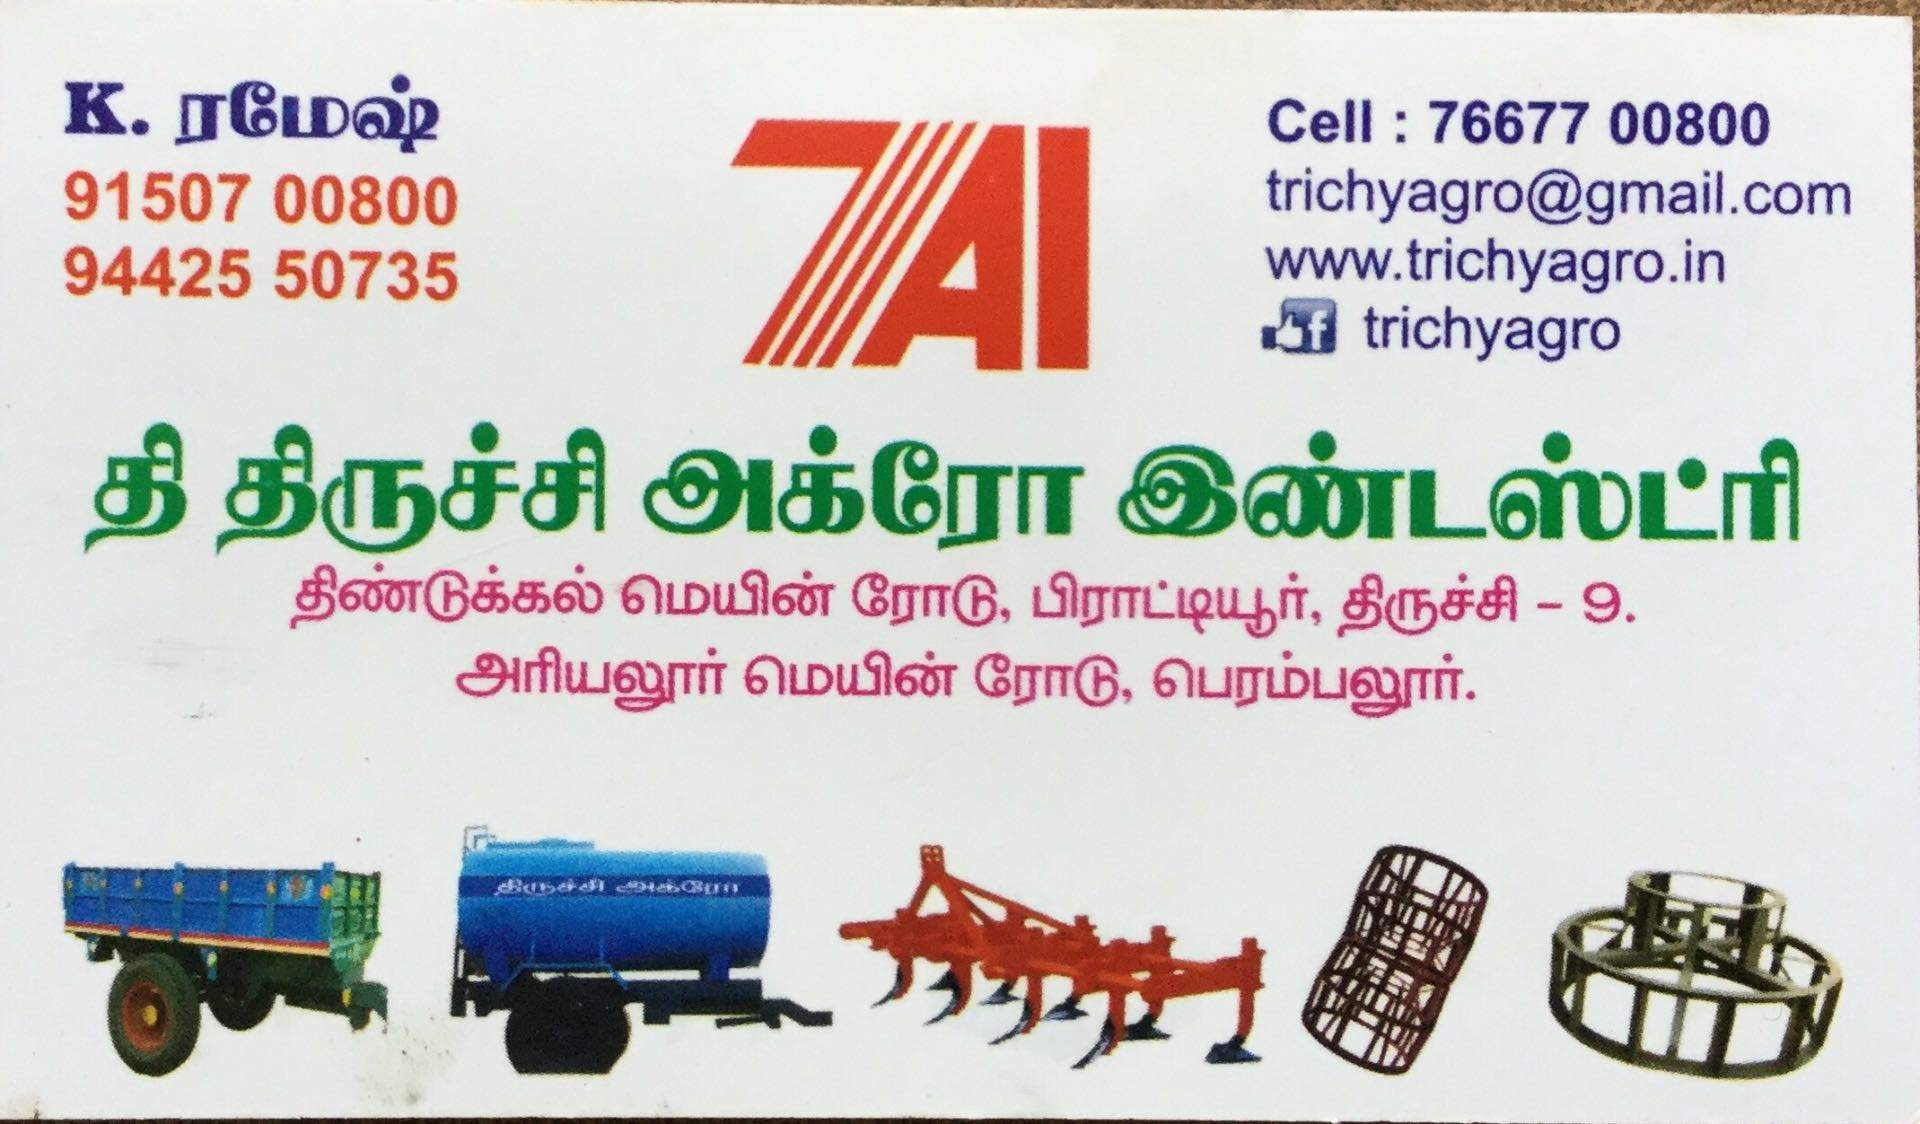 Top 30 Agricultural Equipment Dealers in Trichy - Best Farming